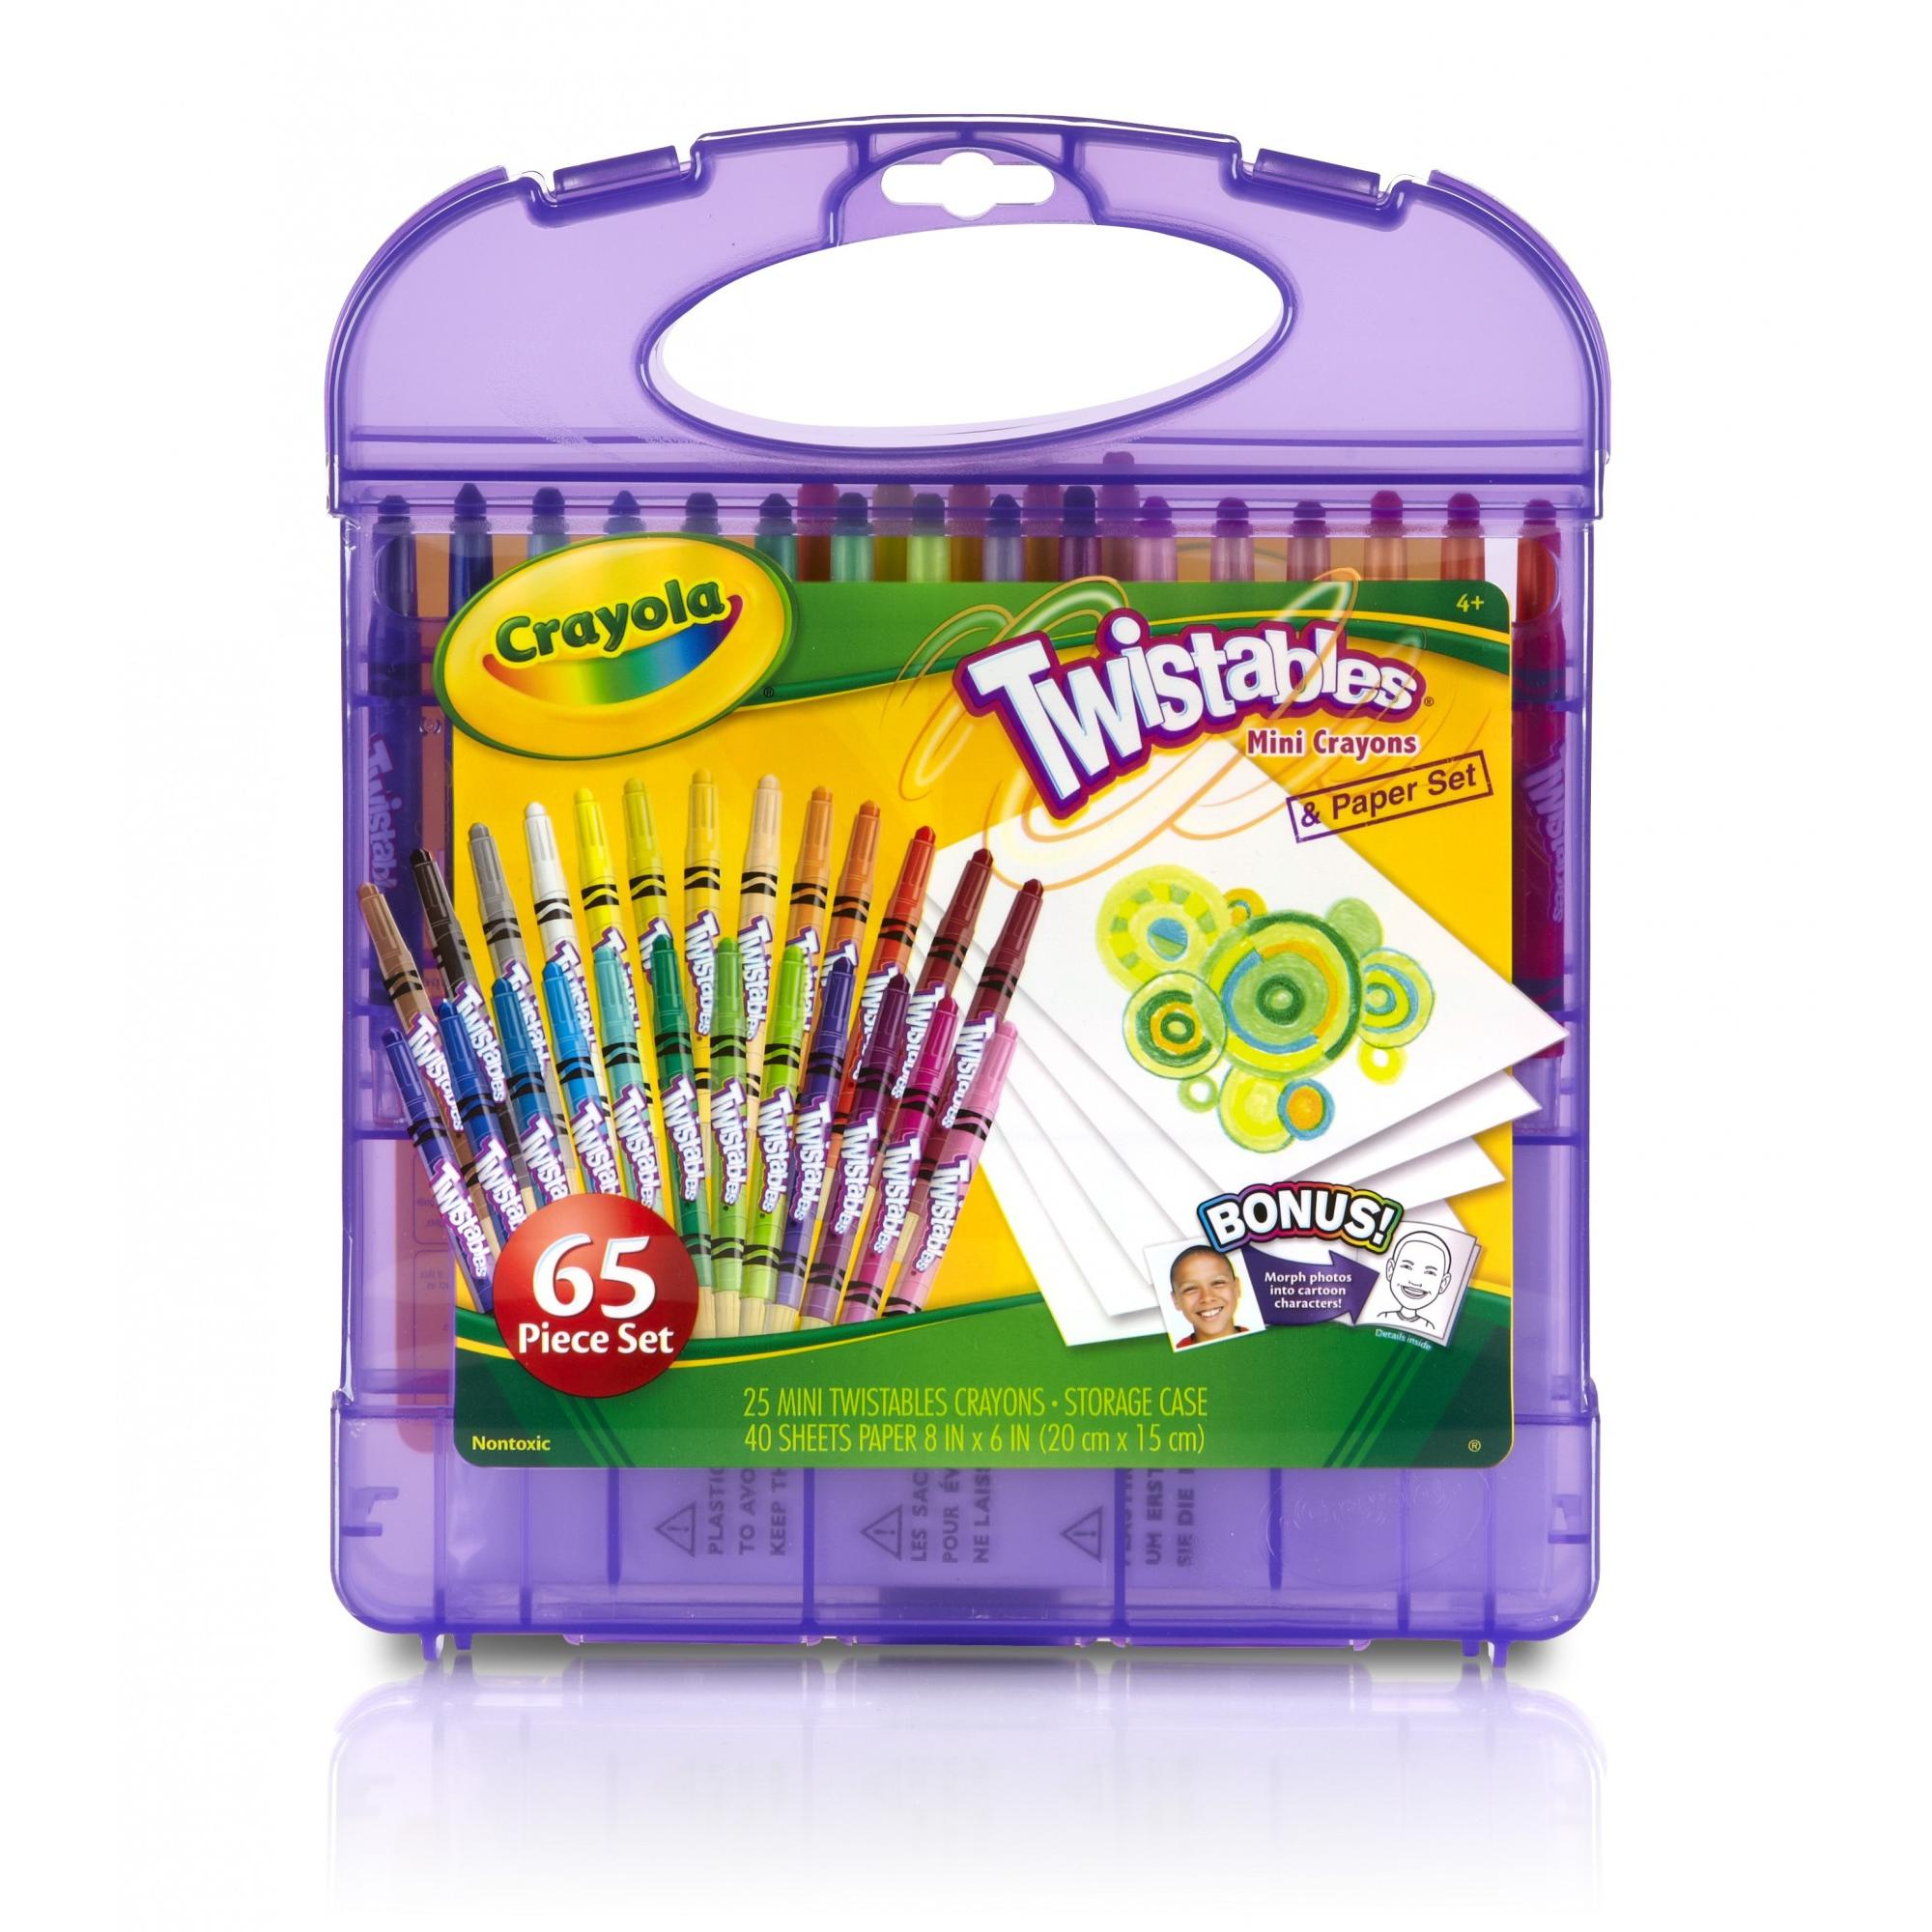 Crayola Twistables Mini Crayons & Paper Set 65 pc Pack by Crayola